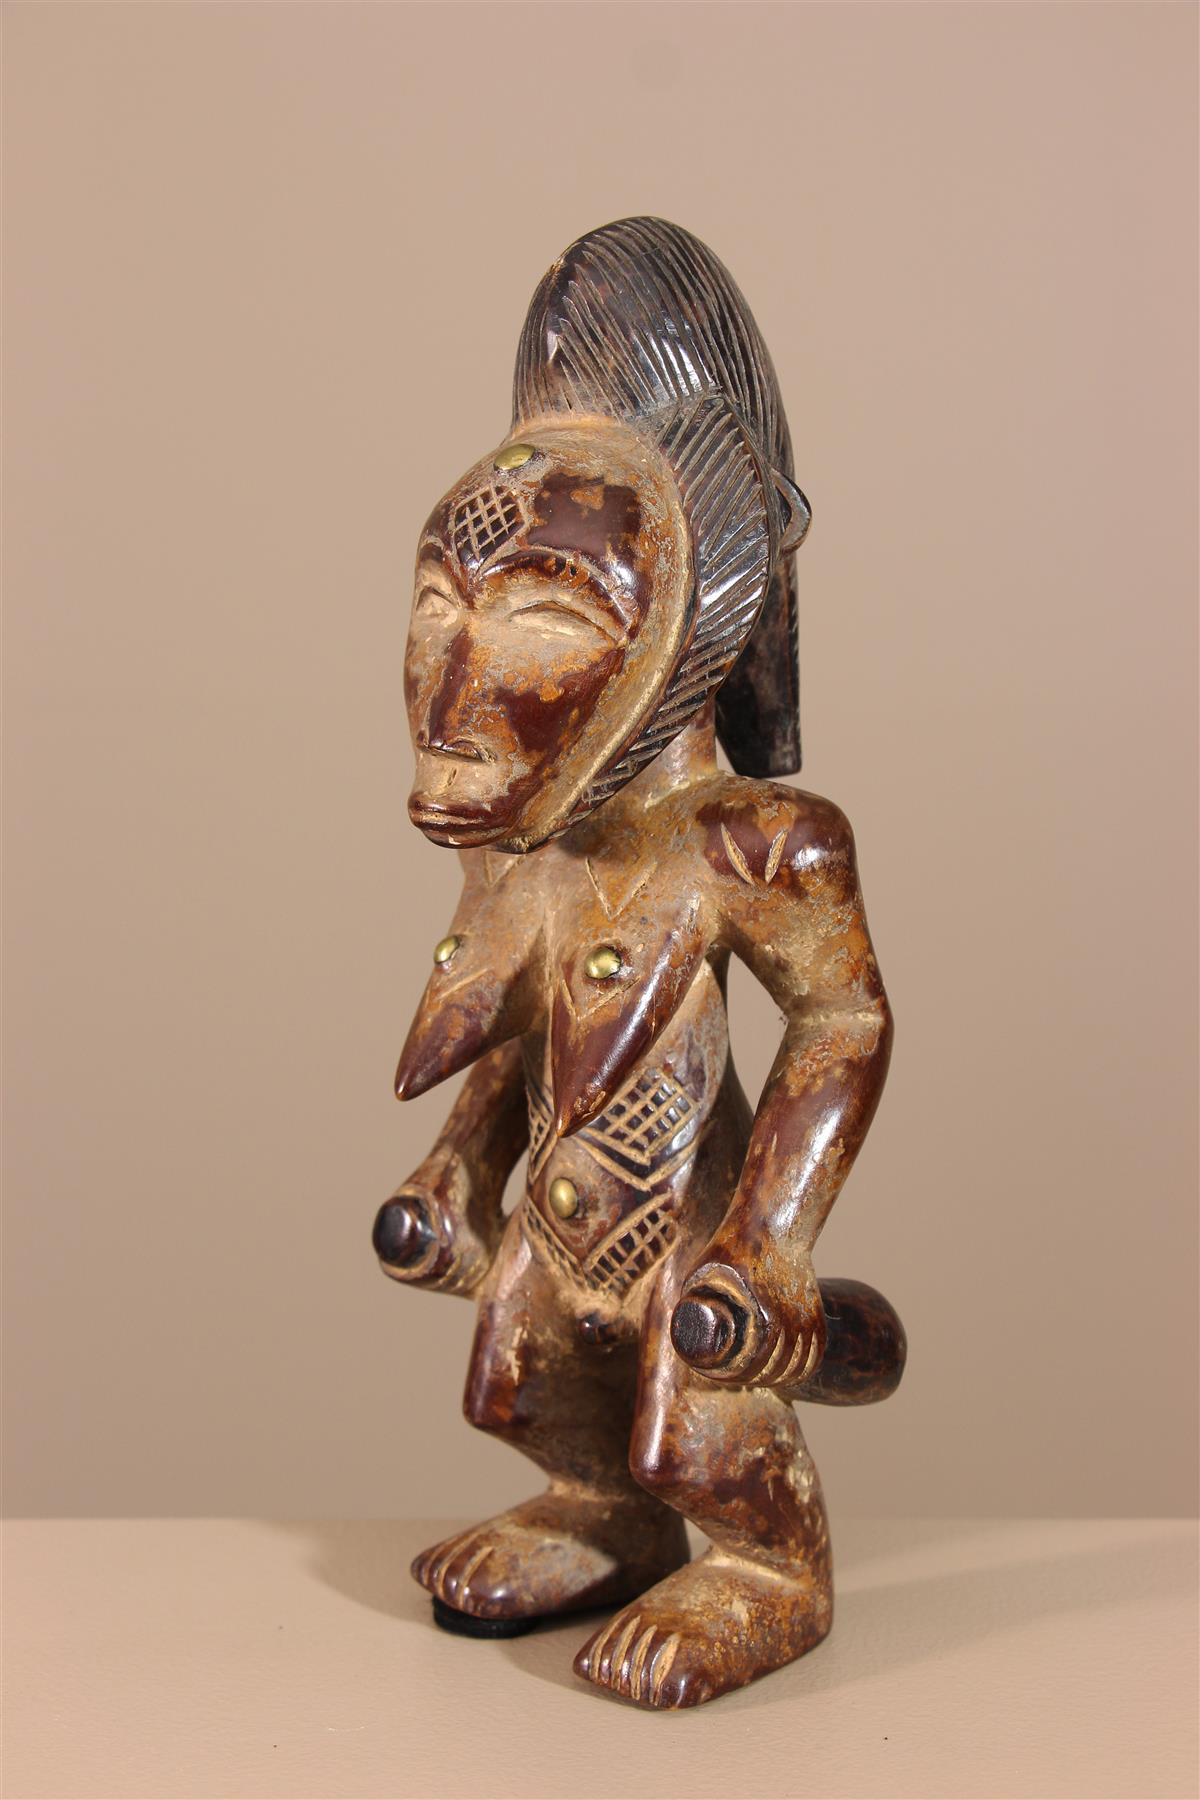 Statuette africaine - Déco africaine - Art africain traditionnel